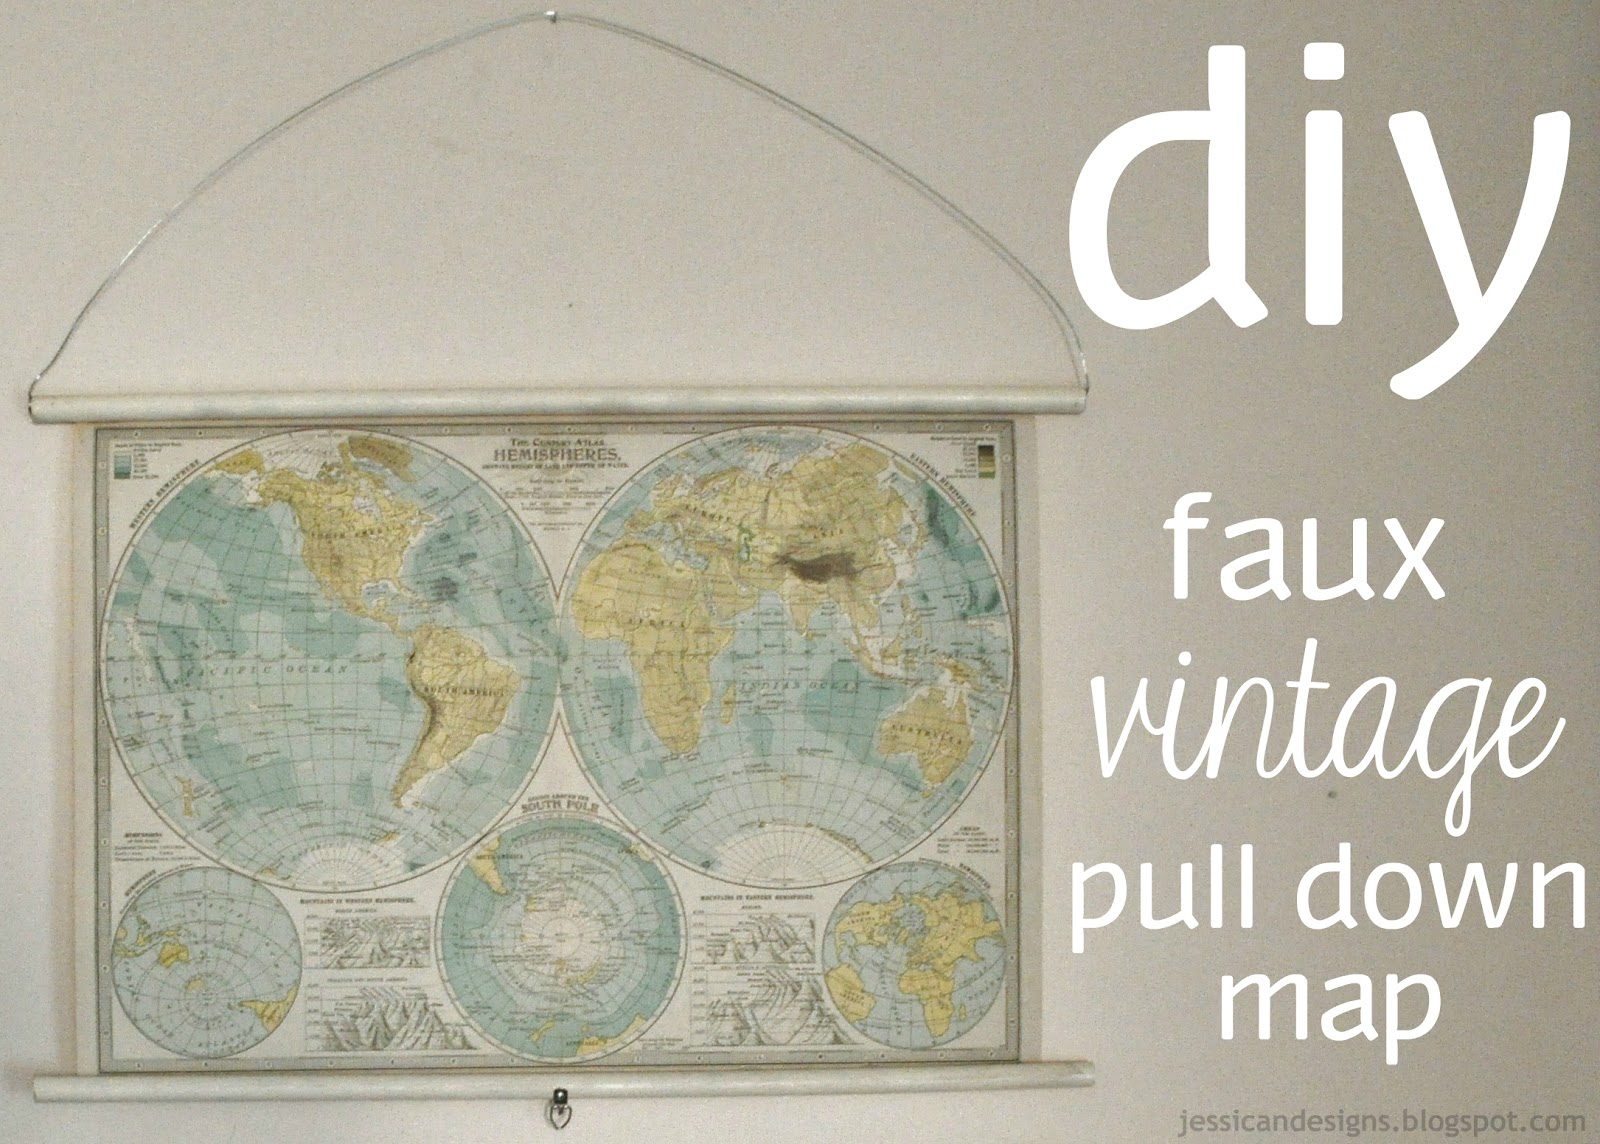 Vintage Pull Down Map jessicaNdesigns: DIY Faux Vintage Pull Down Map. Vintage Pull Down Map